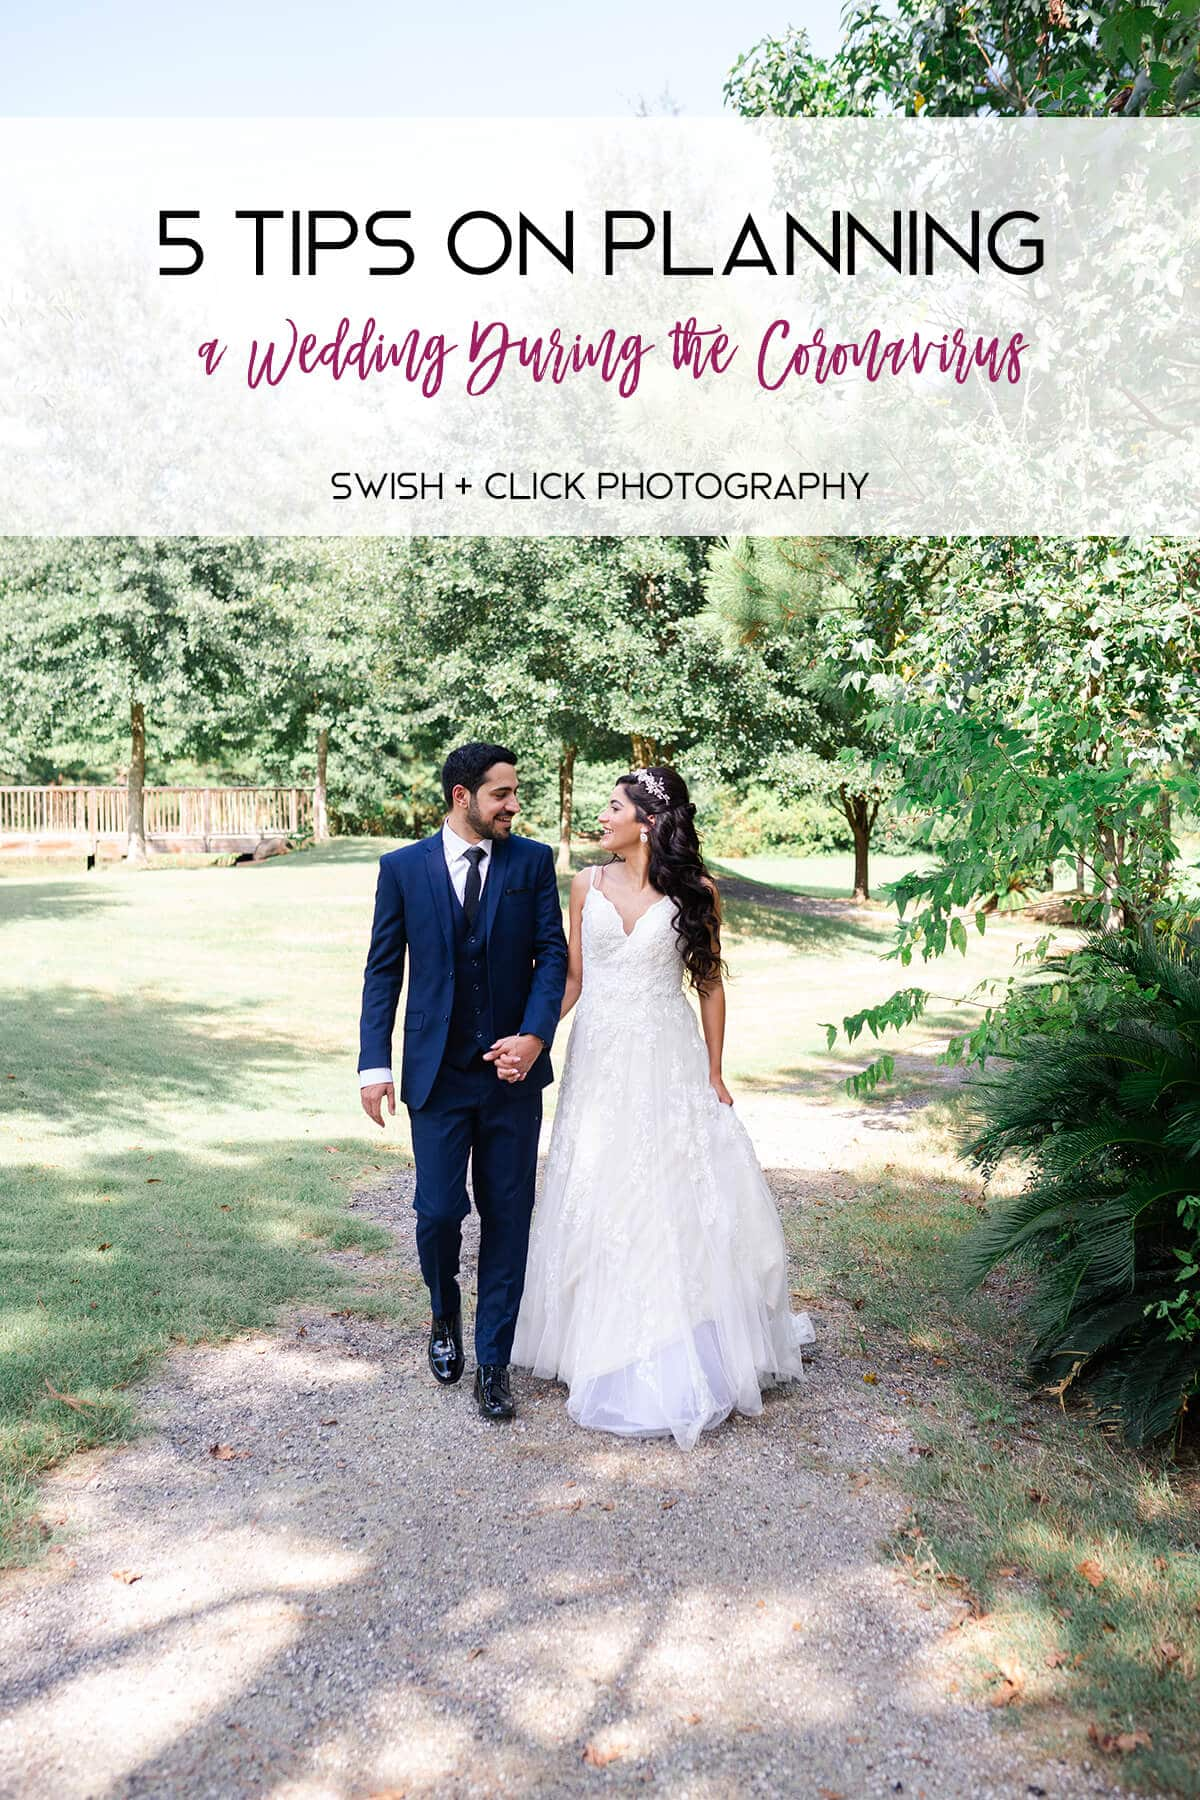 5 Tips on Planning a Wedding During the Coronavirus